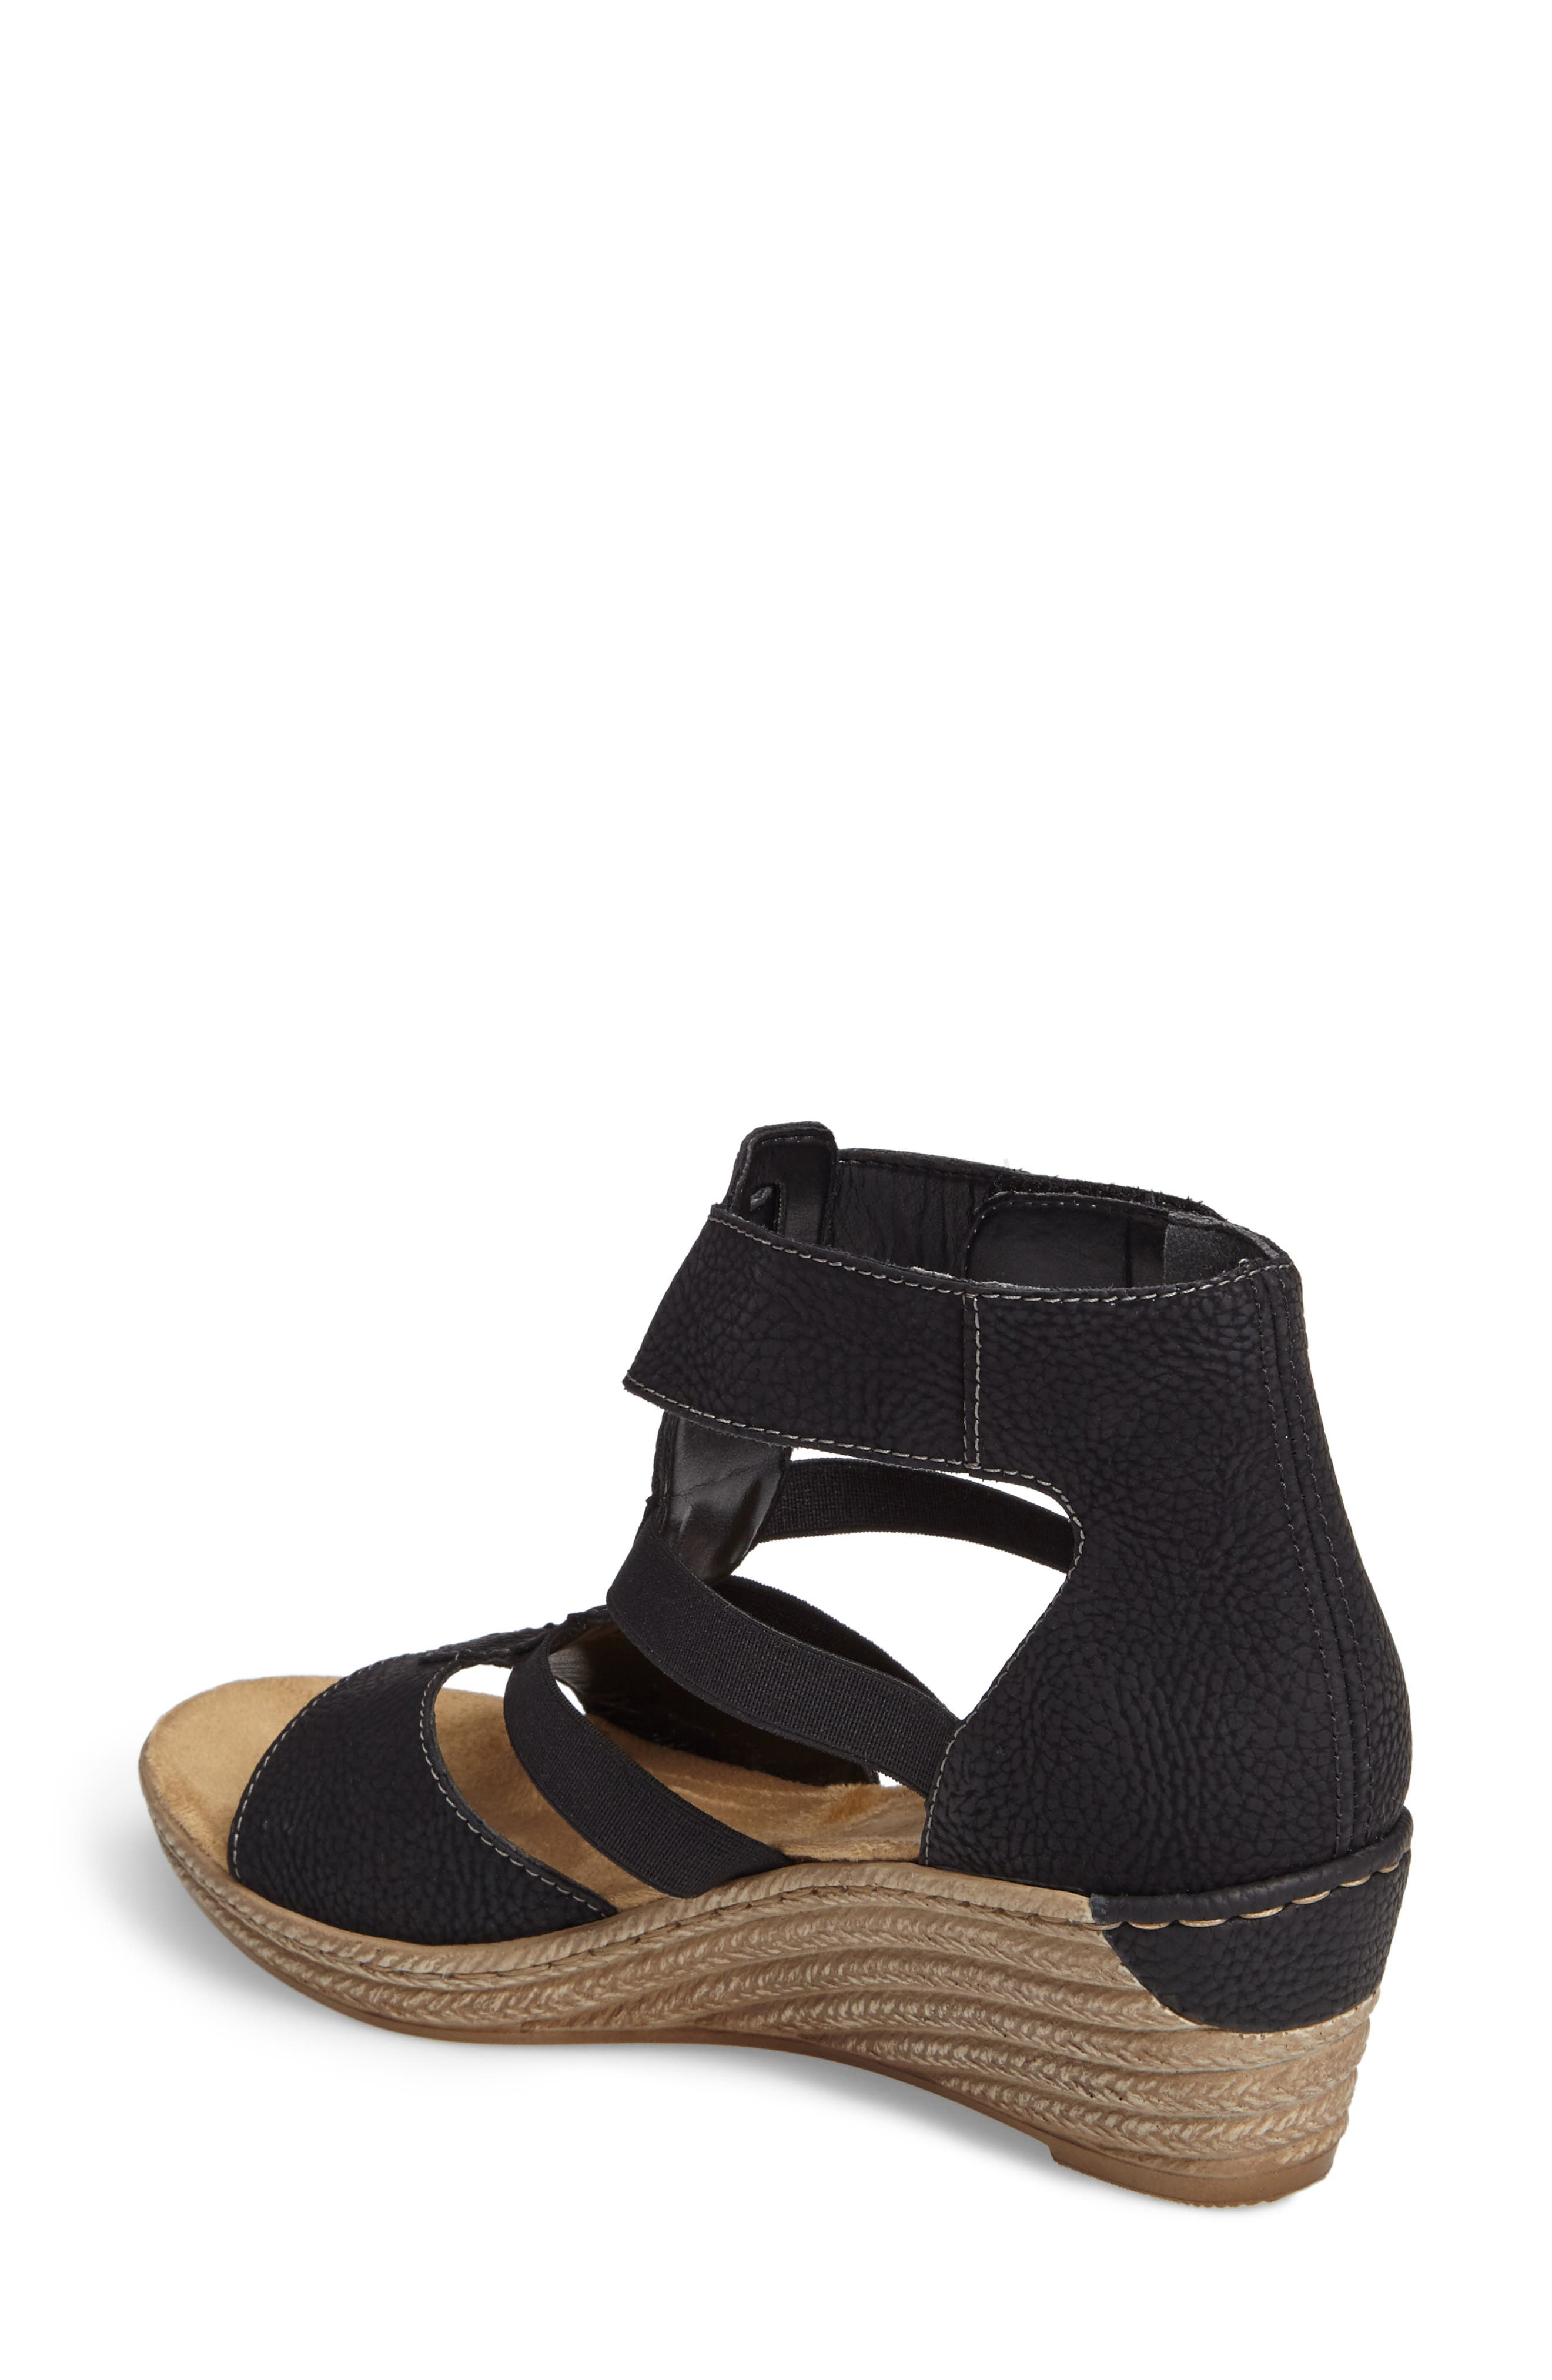 Alternate Image 2  - Rieker Antistress Fanni 39 Wedge Sandal (Women)